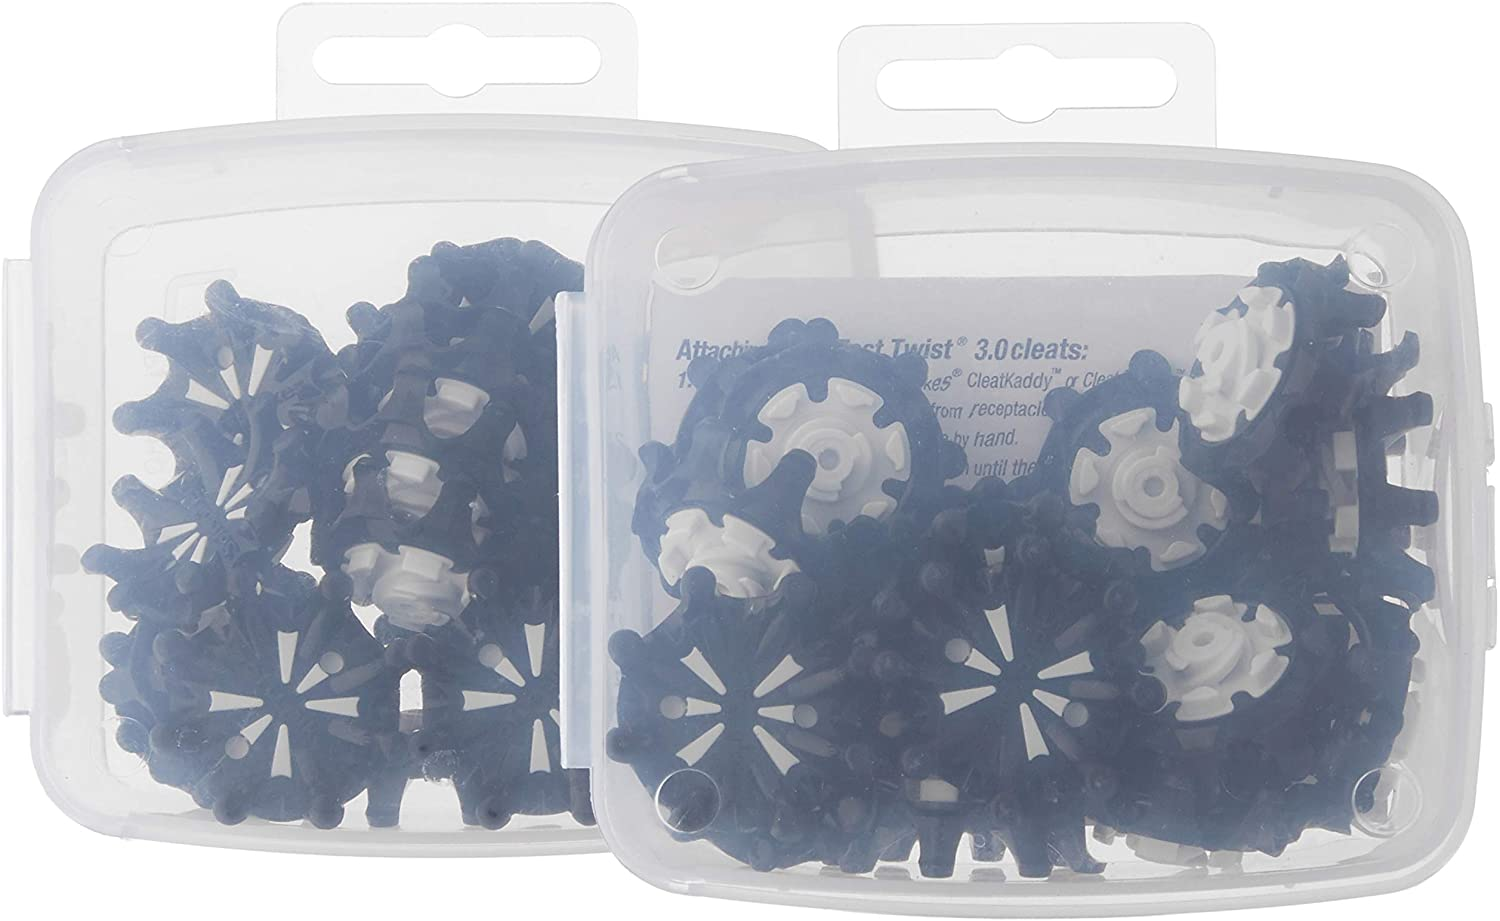 Softspikes Pulsar Golf New product! New type Popular brand in the world Cleats Fast Pack Value Twist 3.0